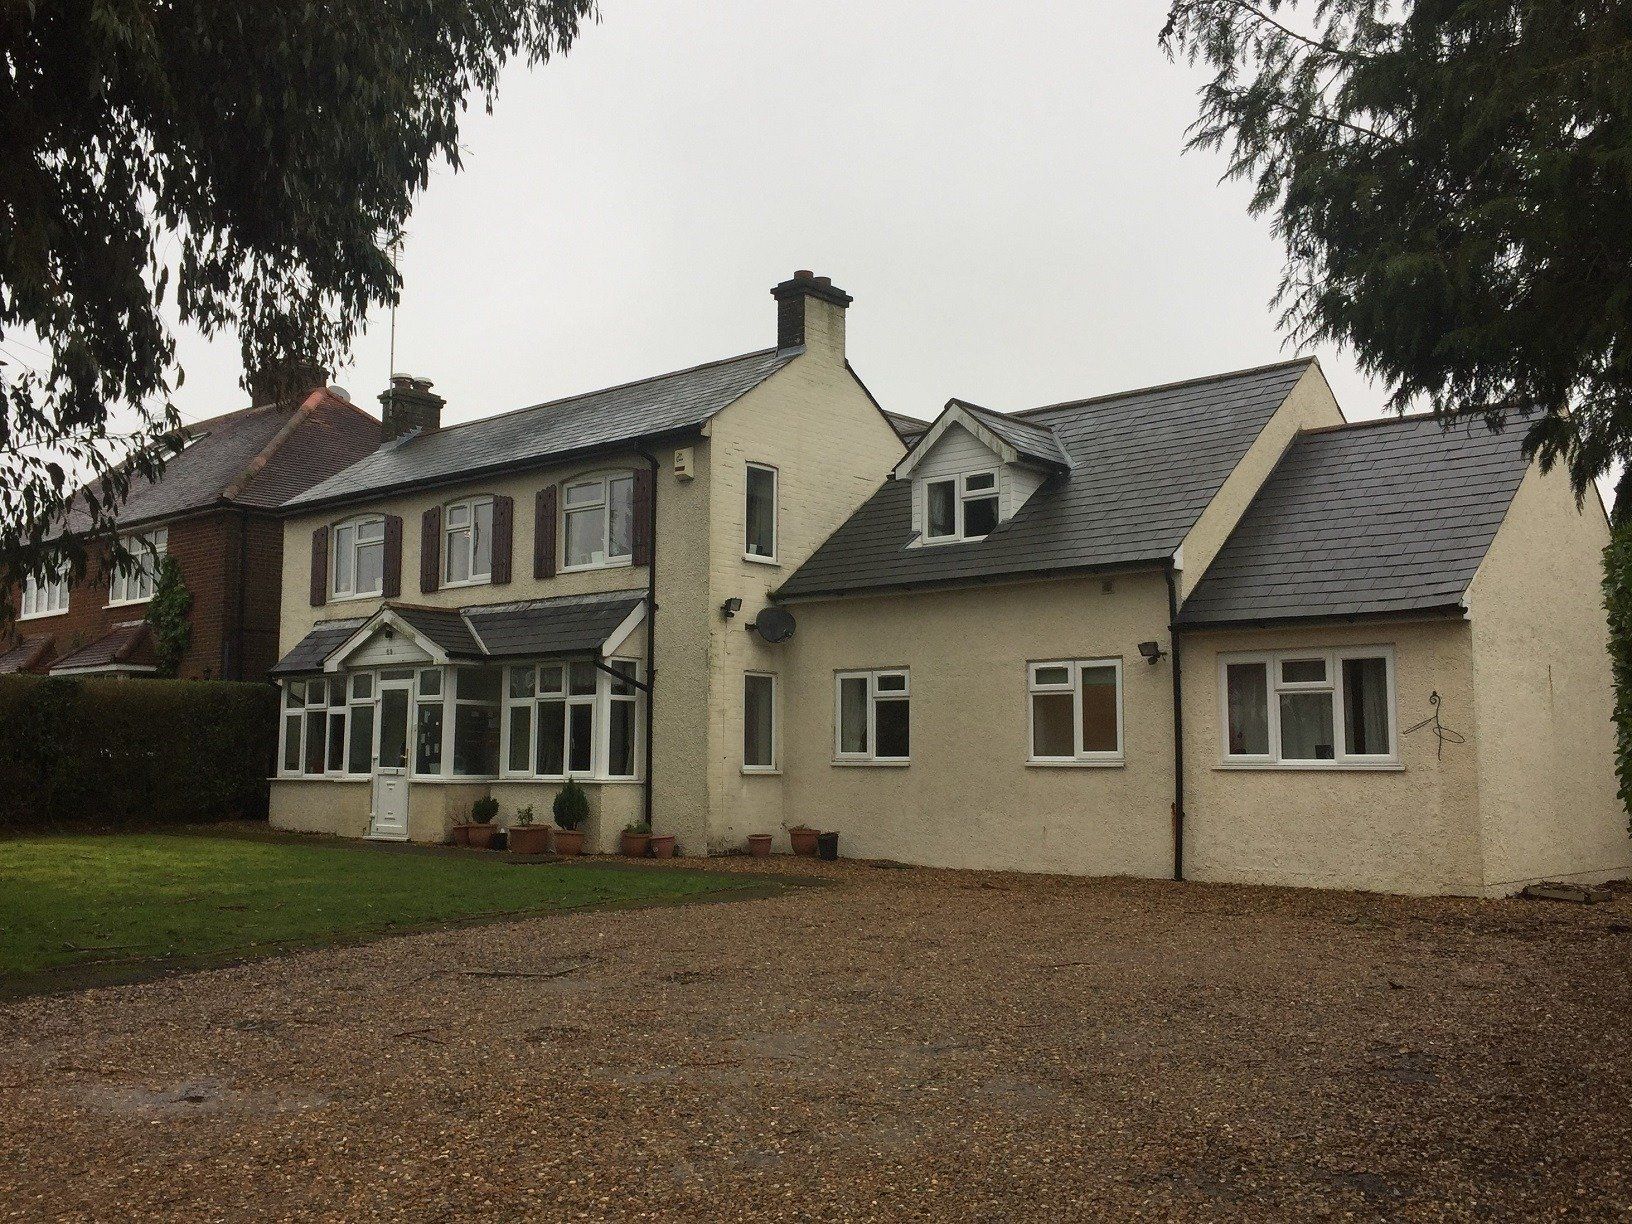 External view of 69 Chartridge Lane